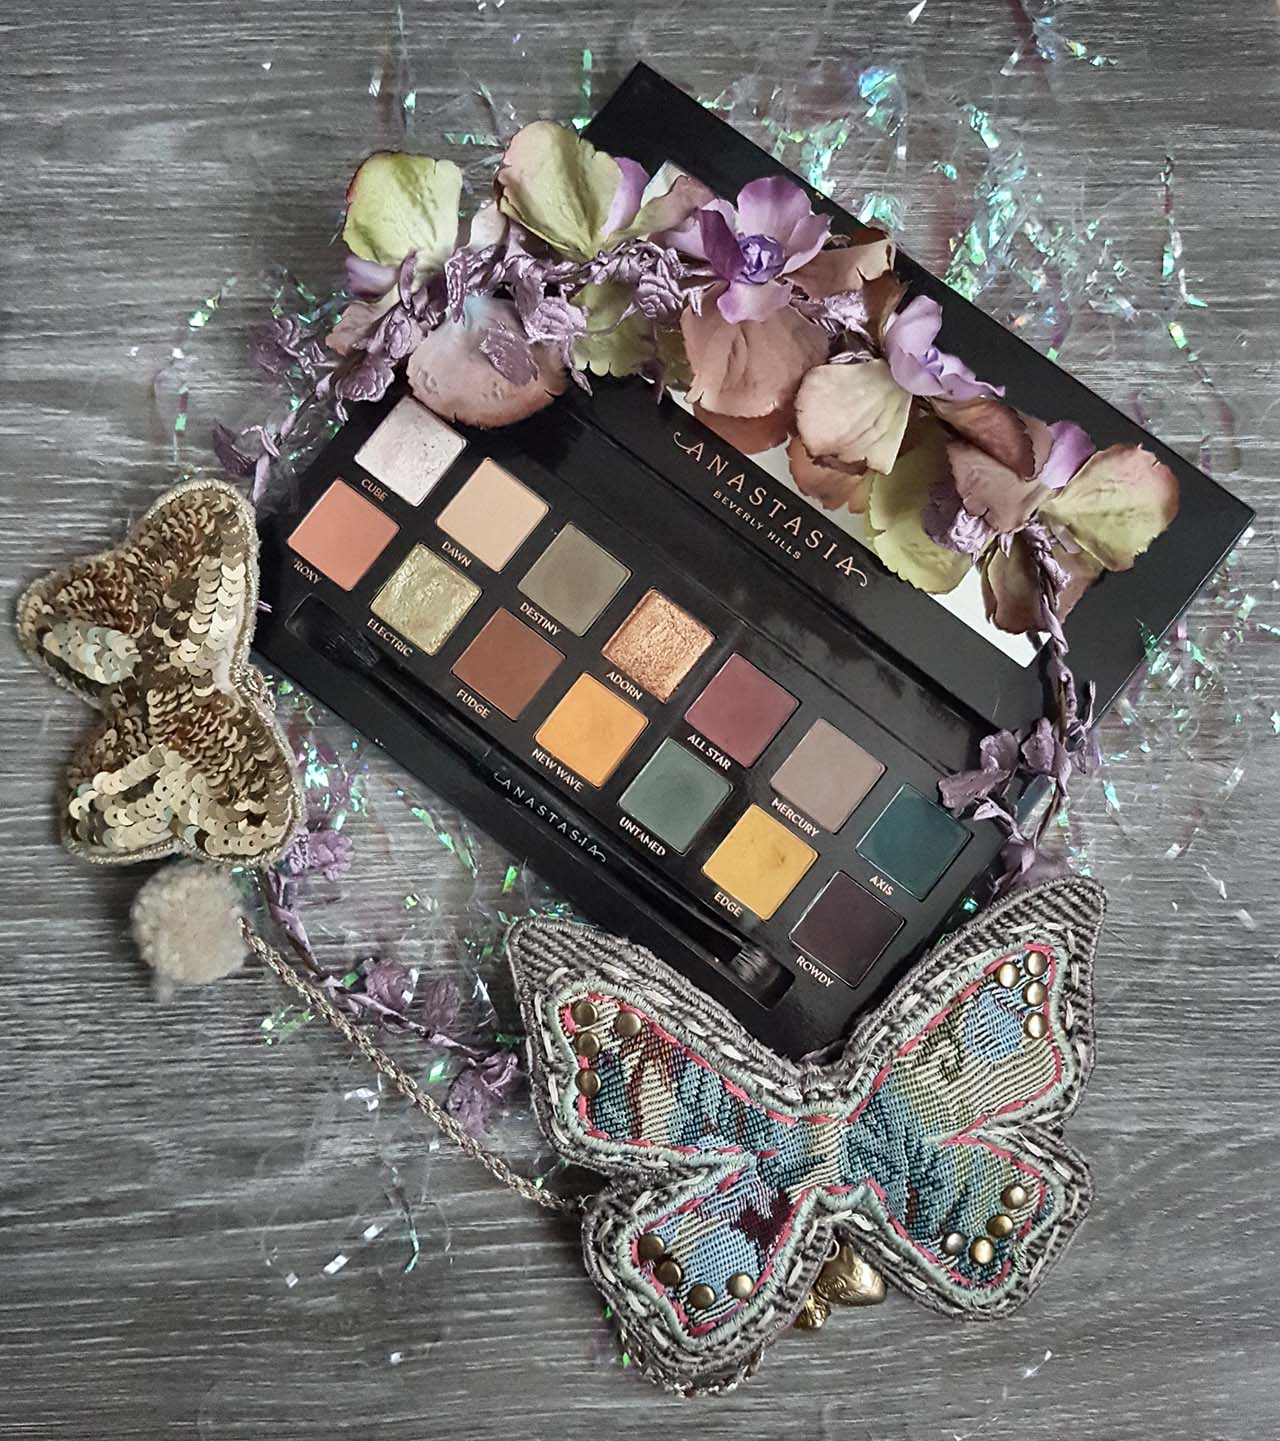 The Subculture Palette by ABH – Why All The Controversy?